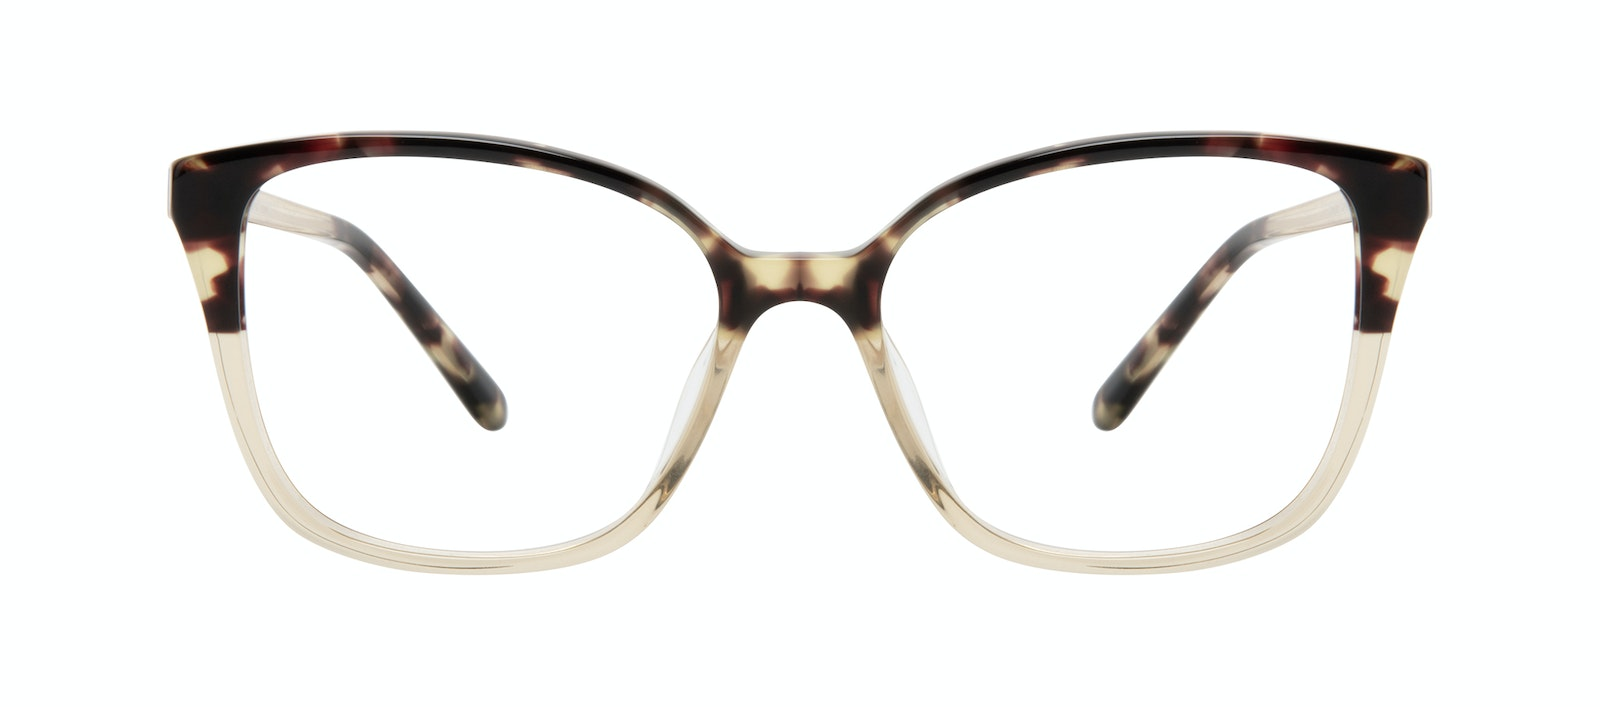 Affordable Fashion Glasses Square Eyeglasses Women Only Golden Tort Front